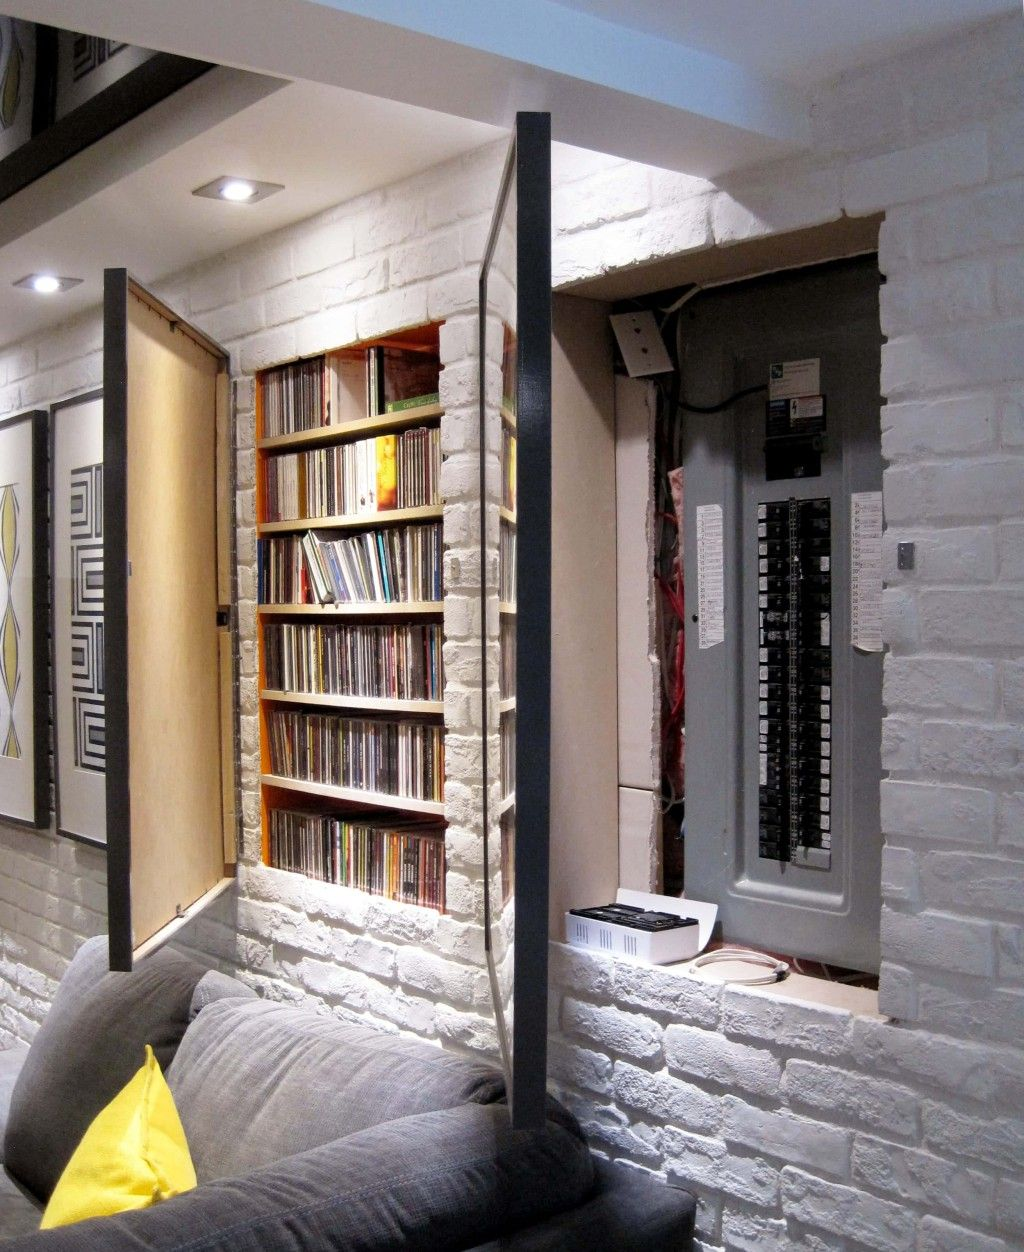 Using Framed Art Posters As Doors To Cover Storage Places